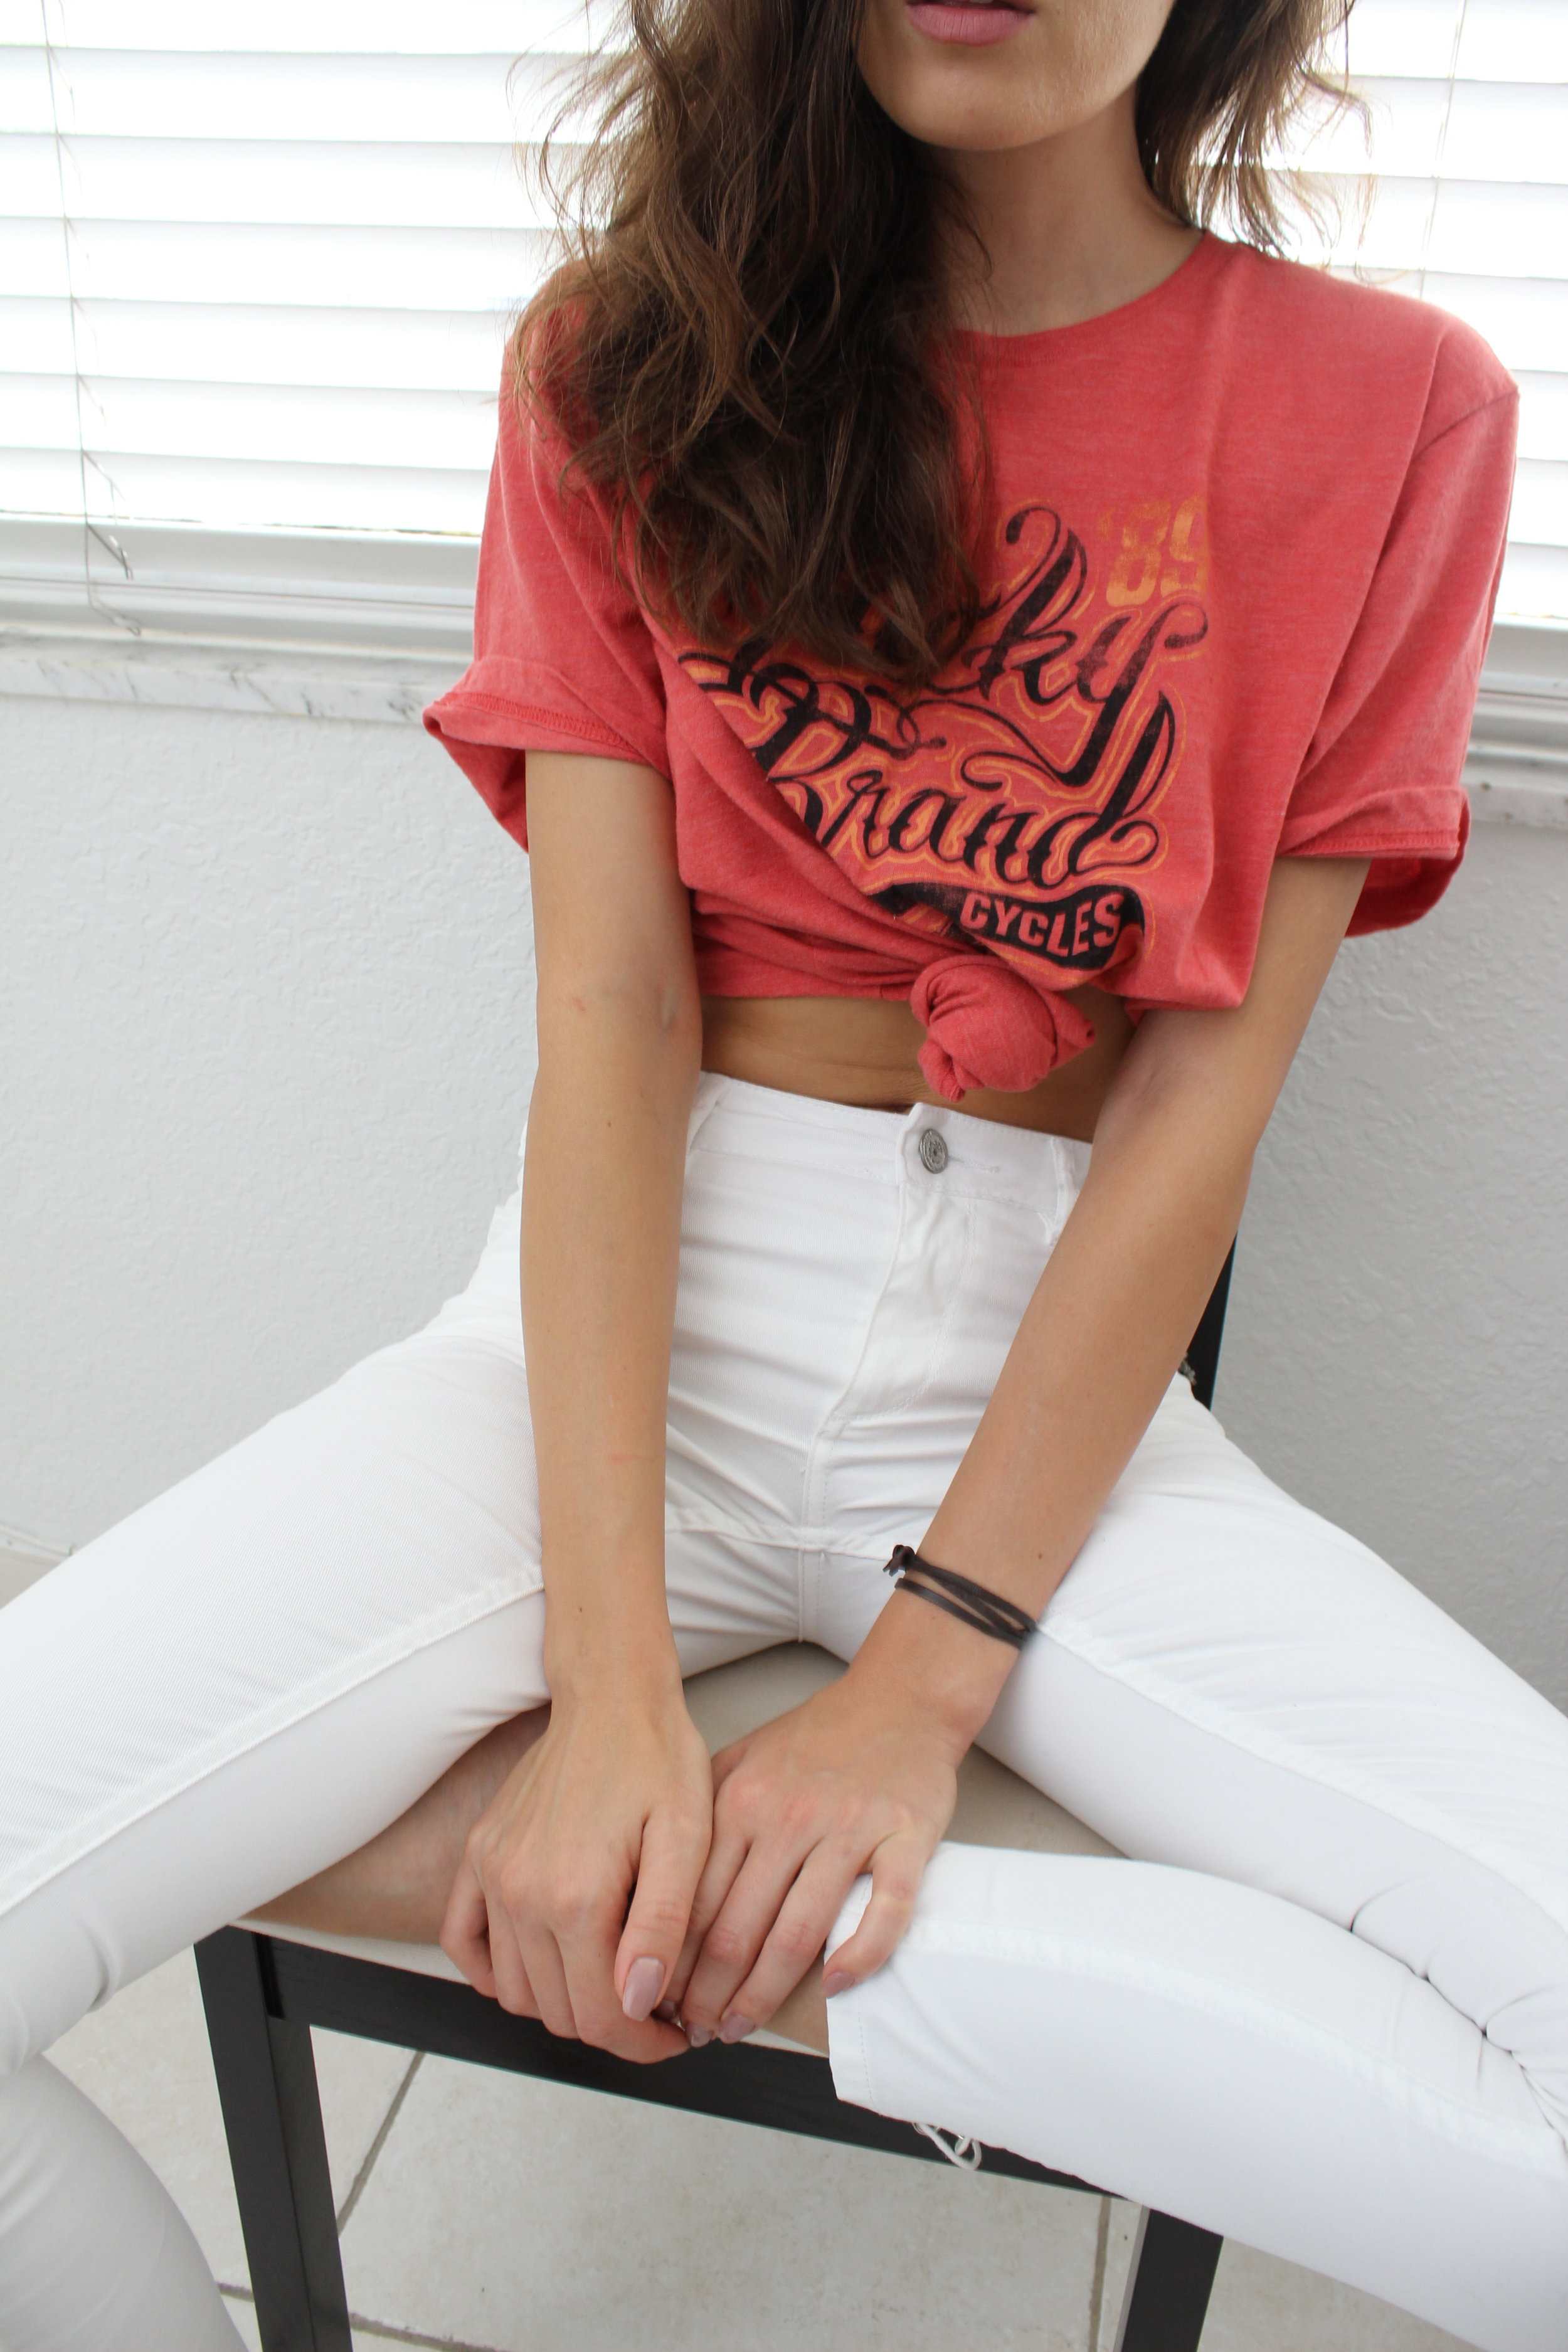 Red T-shirt white trousers fashion close-up photo